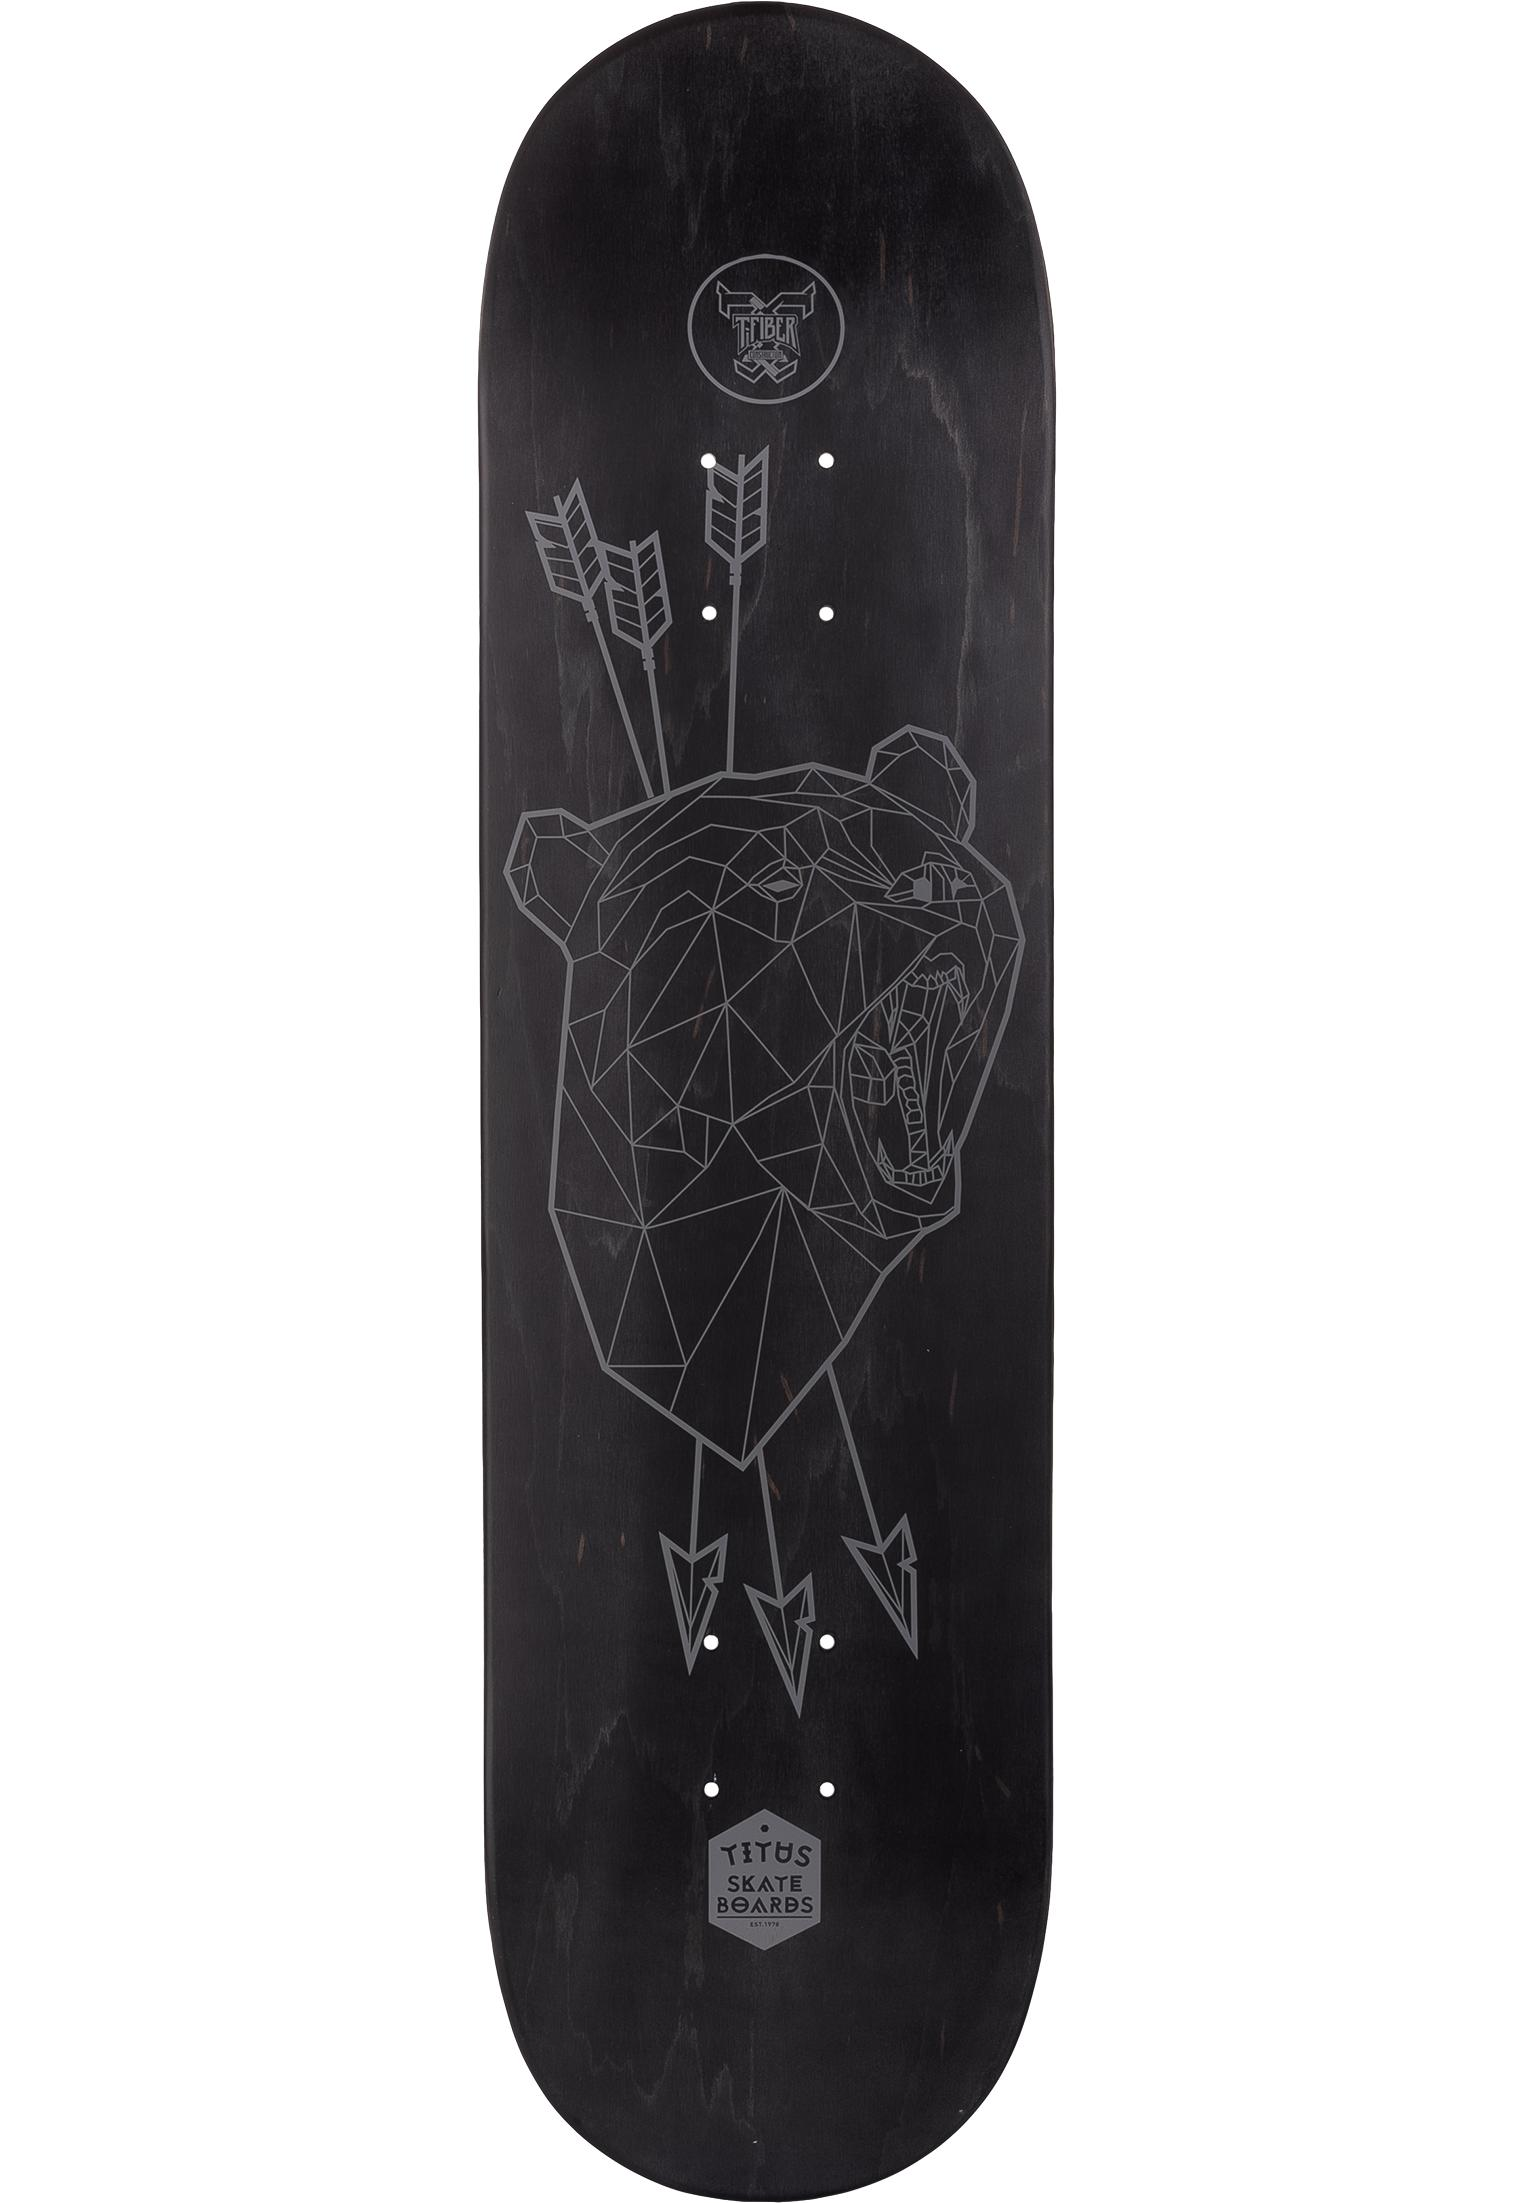 cb8ccde18d9b Polygon Bear T-Fiber TITUS Skateboard Decks in black